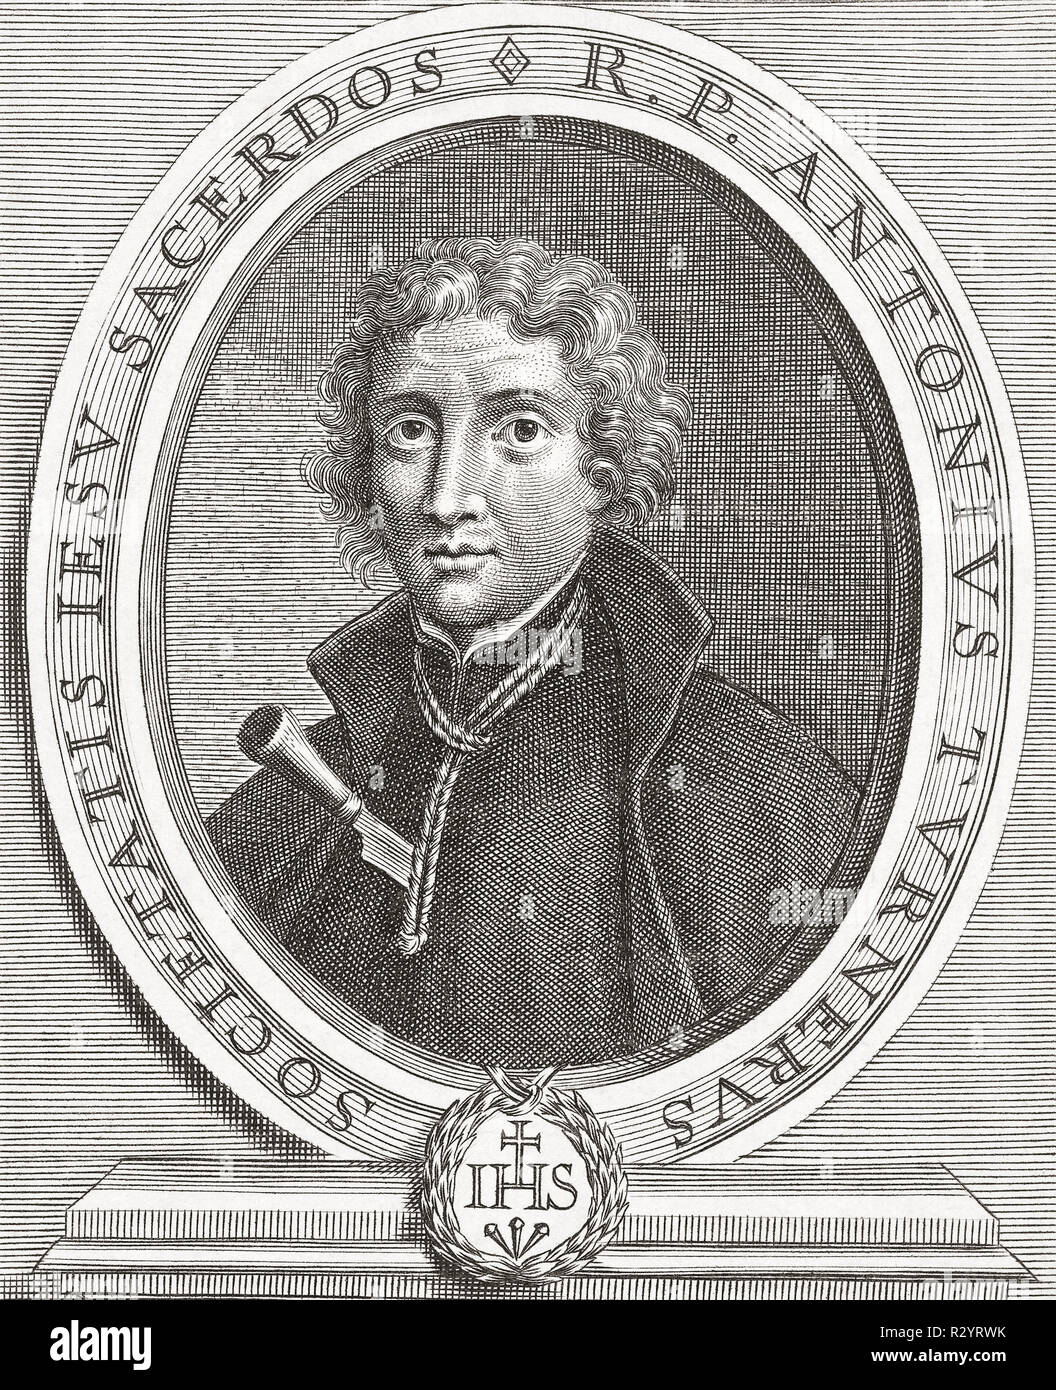 Anthony Turner, 1628-1679.  English Jesuit executed after being falsely accused of involvement in the fictitious Popish Plot to kill King Charles II.  The church considers him a martyr and he was beatified in 1929. - Stock Image